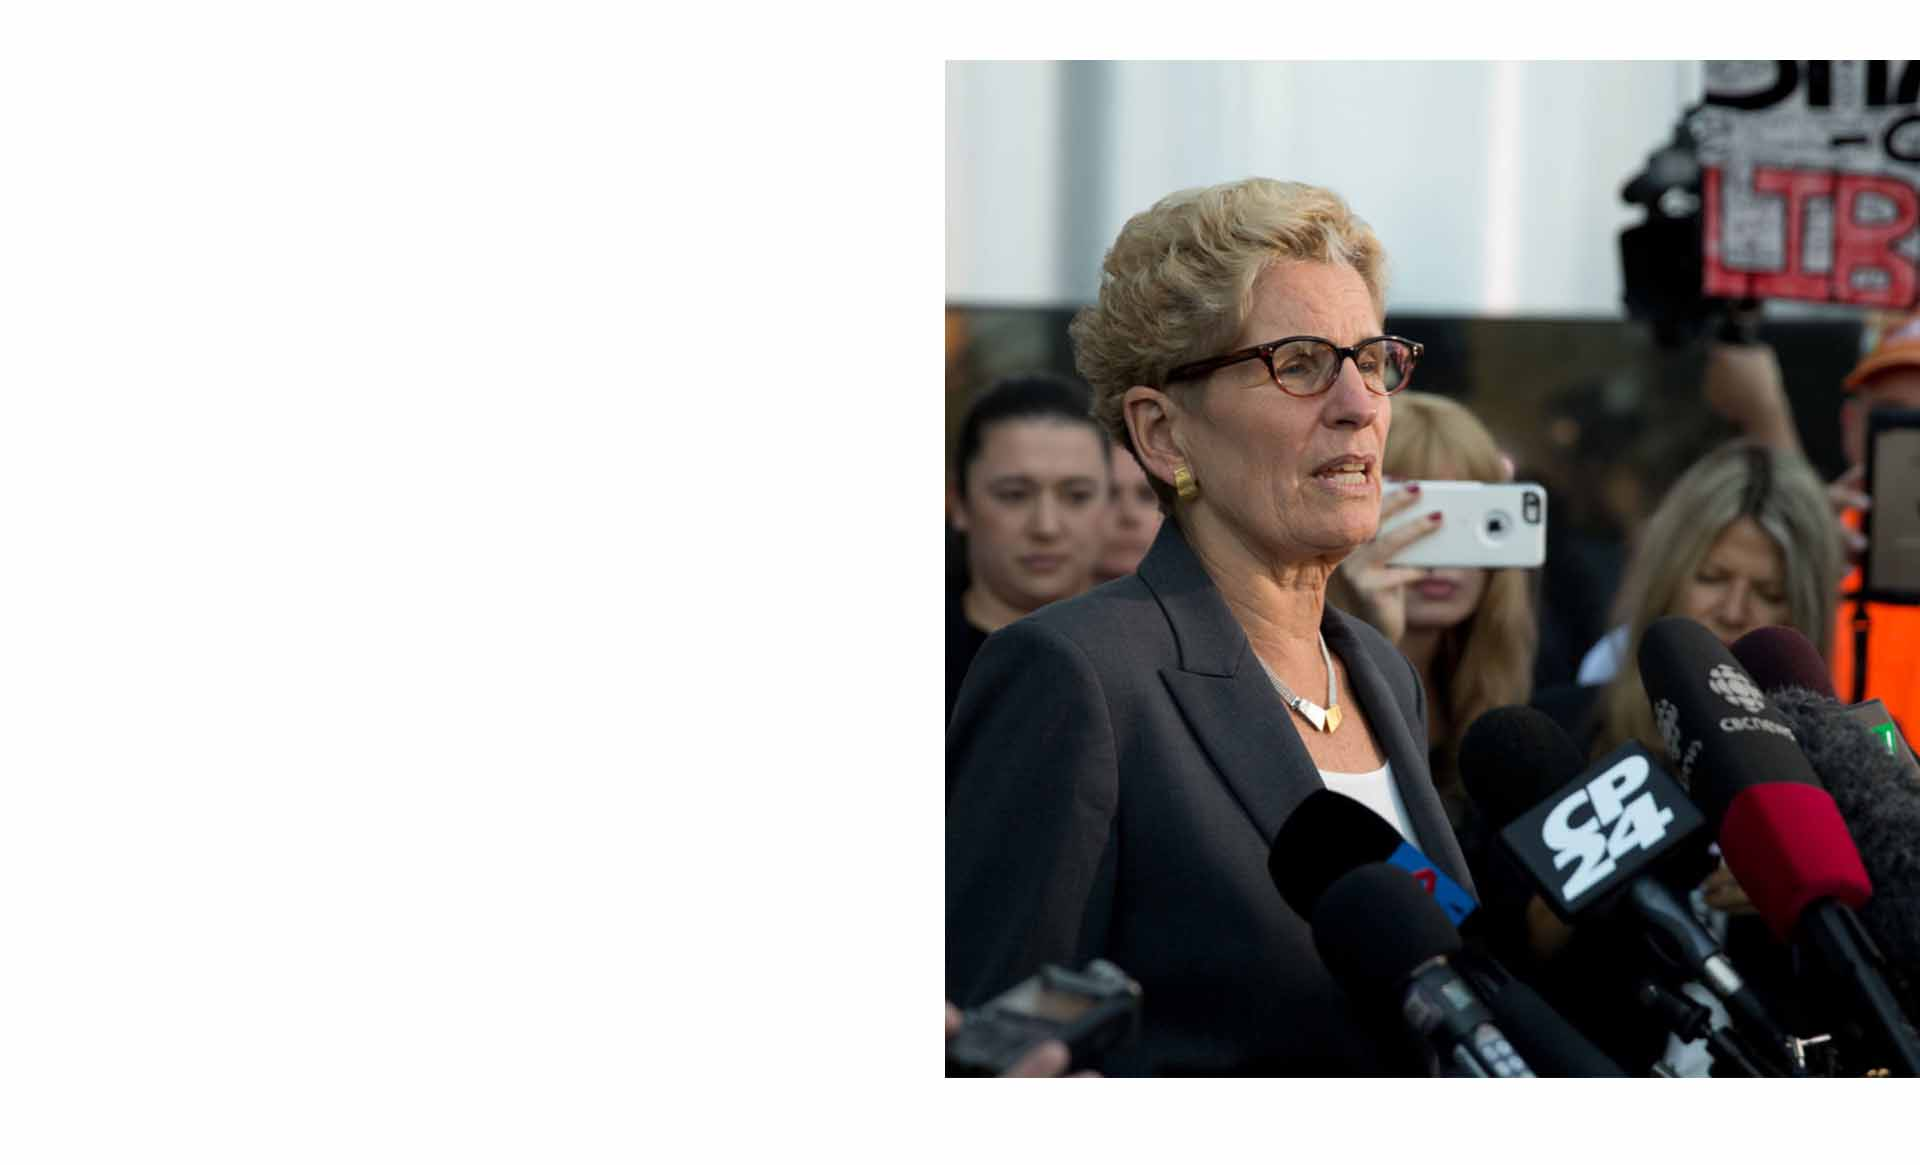 Kathleen Wynne wears an Anne-Marie Chagnon's necklace